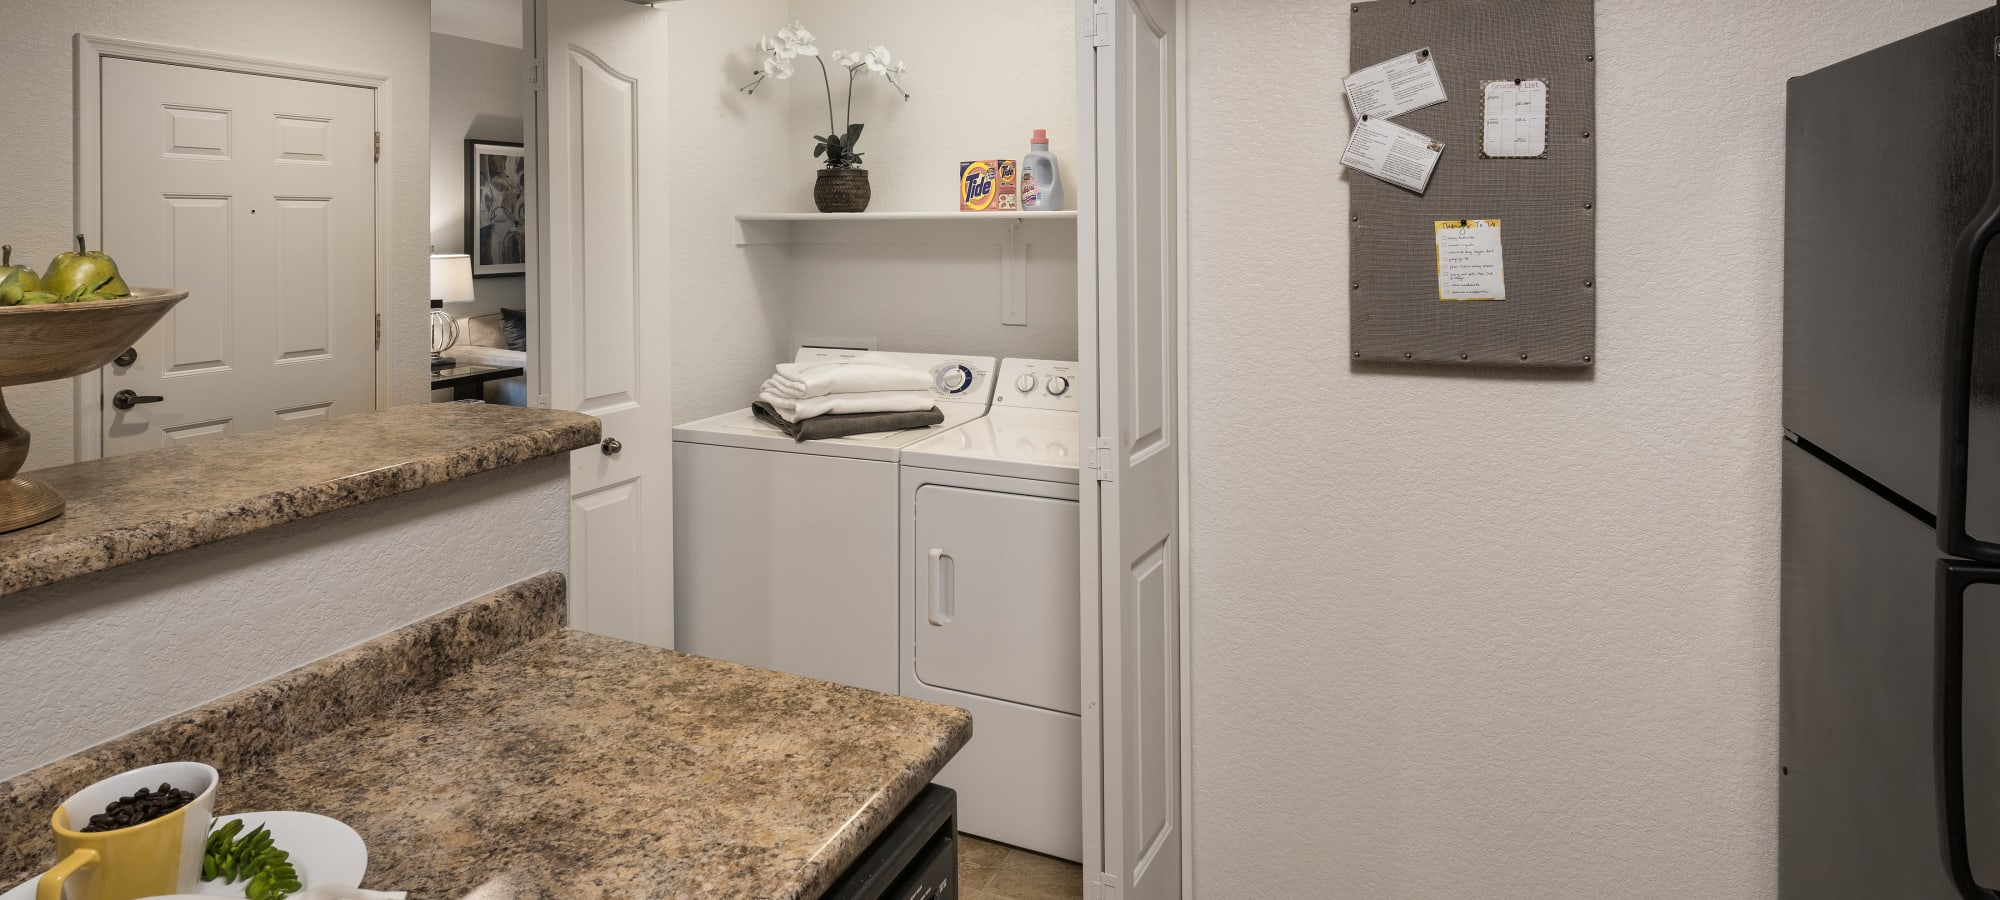 Luxury apartments with a refrigerator in Glendale, Arizona